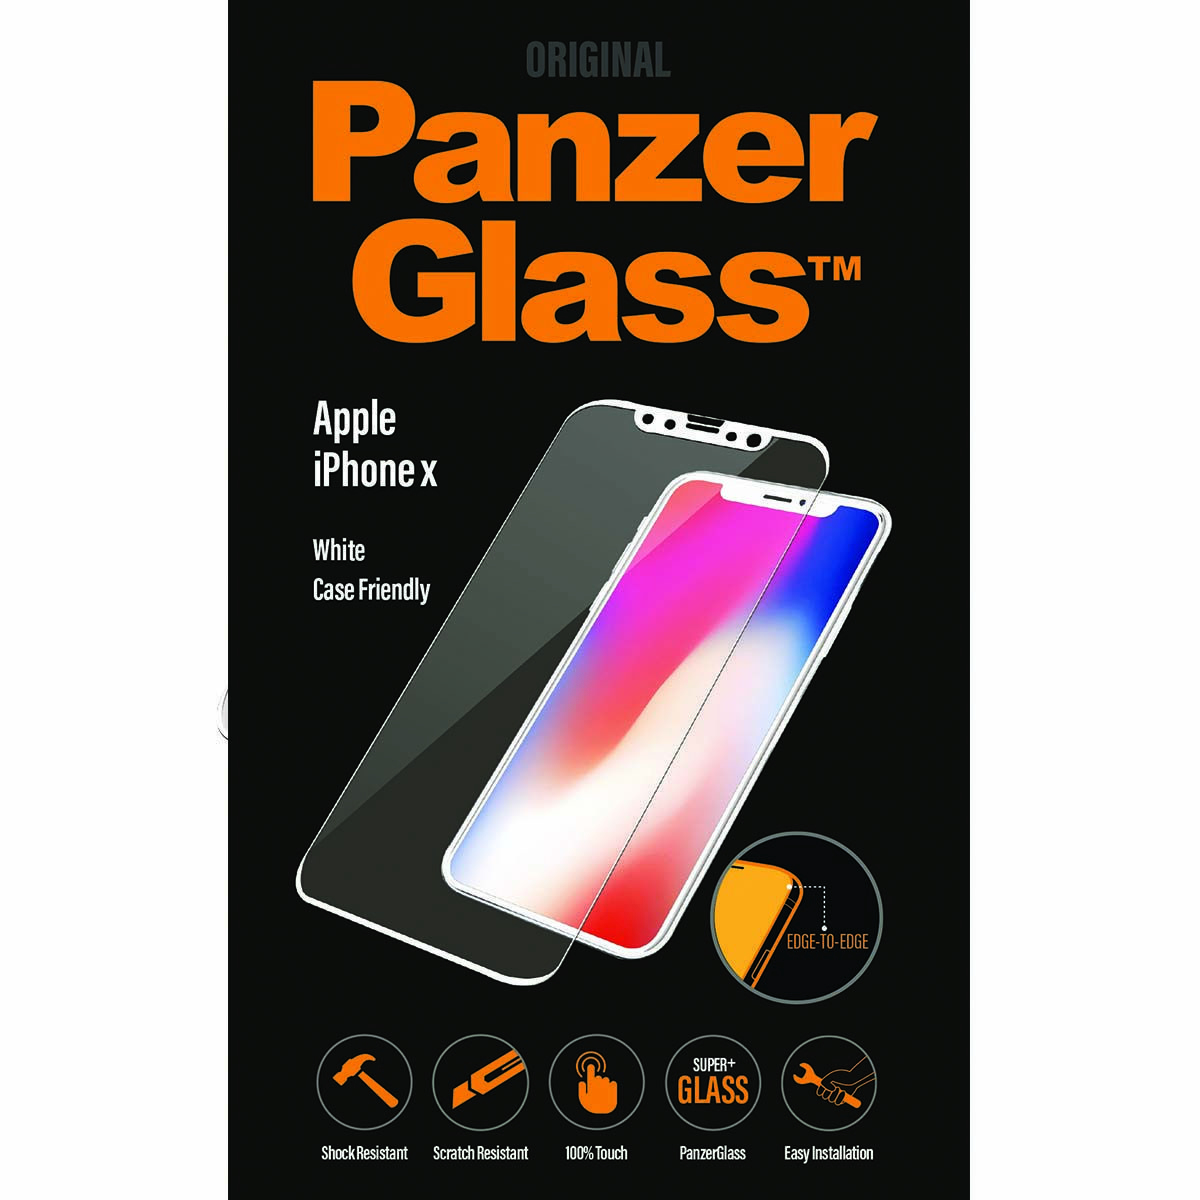 Panzerglass Case Friendly White Screen Protector for Iphone X